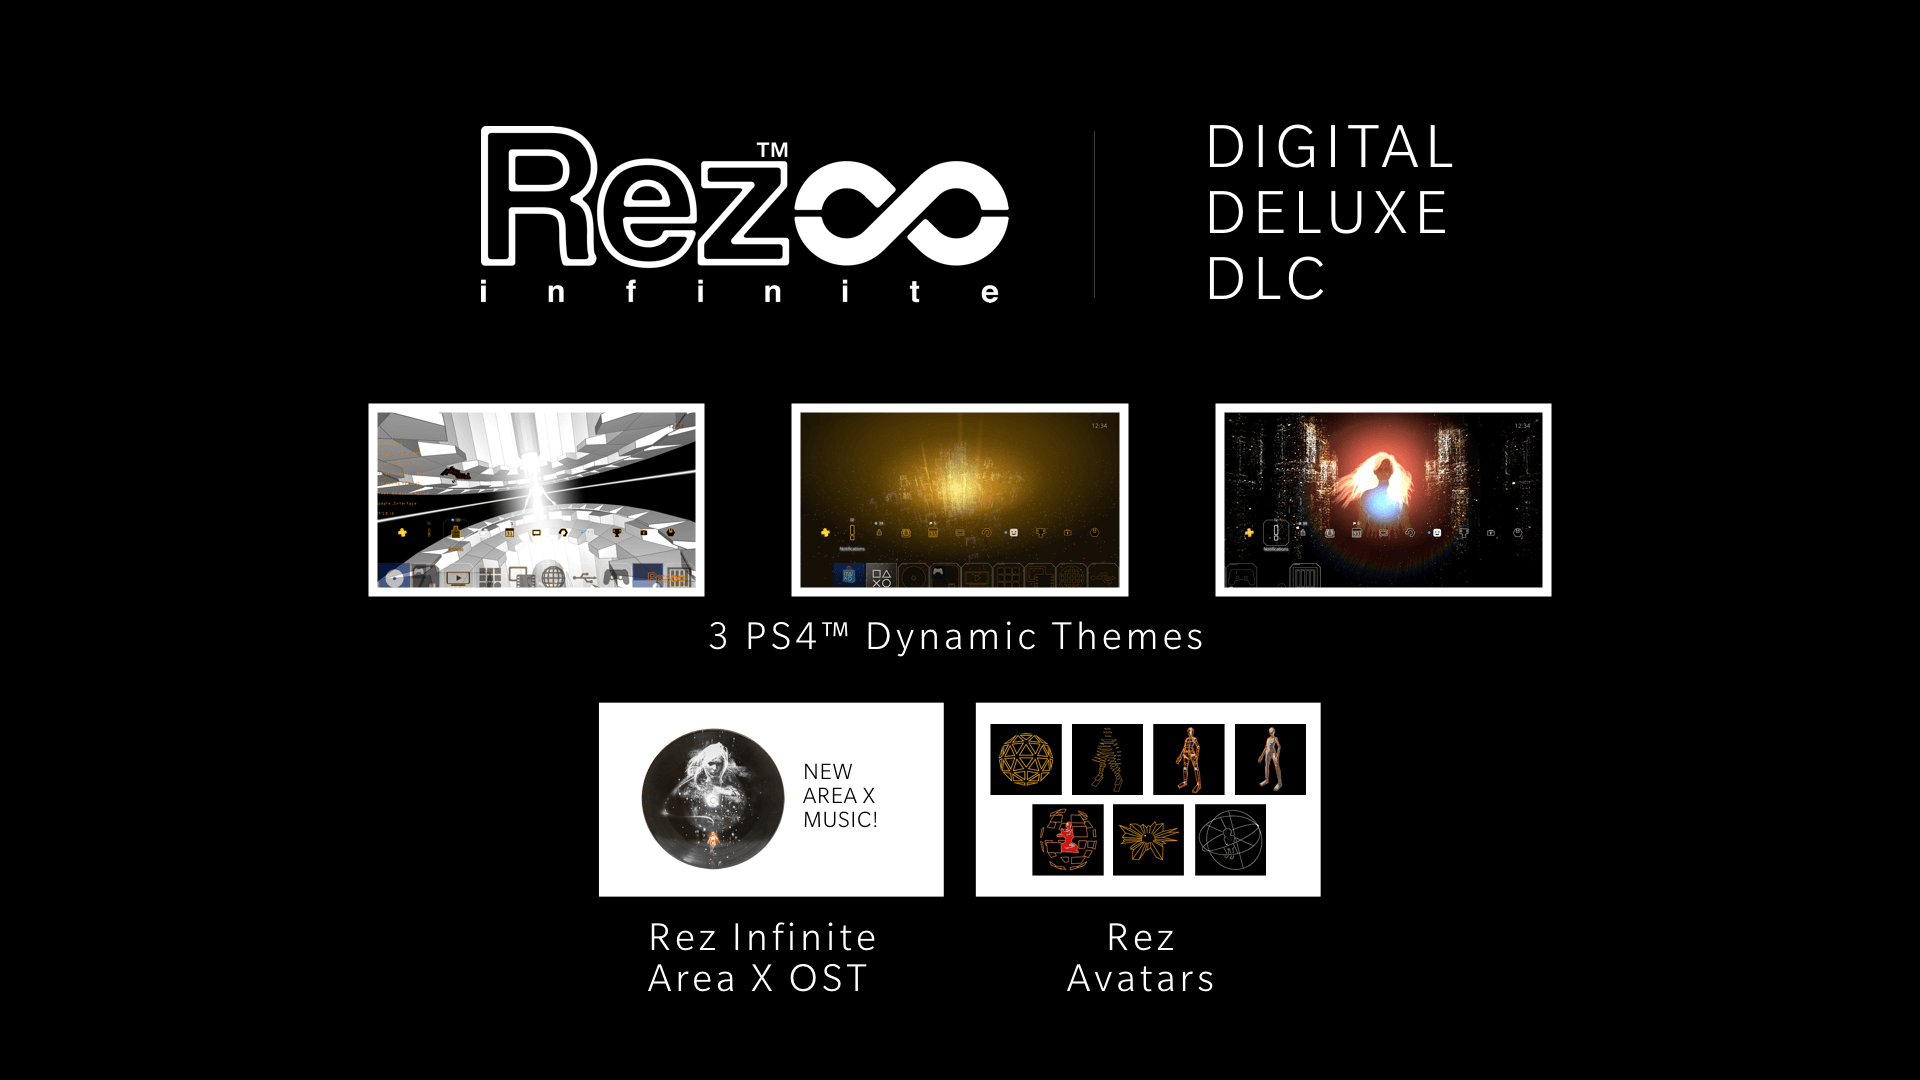 Singularity Dynamic Theme and Digital Deluxe DLC for PS4 | Rez Infinite